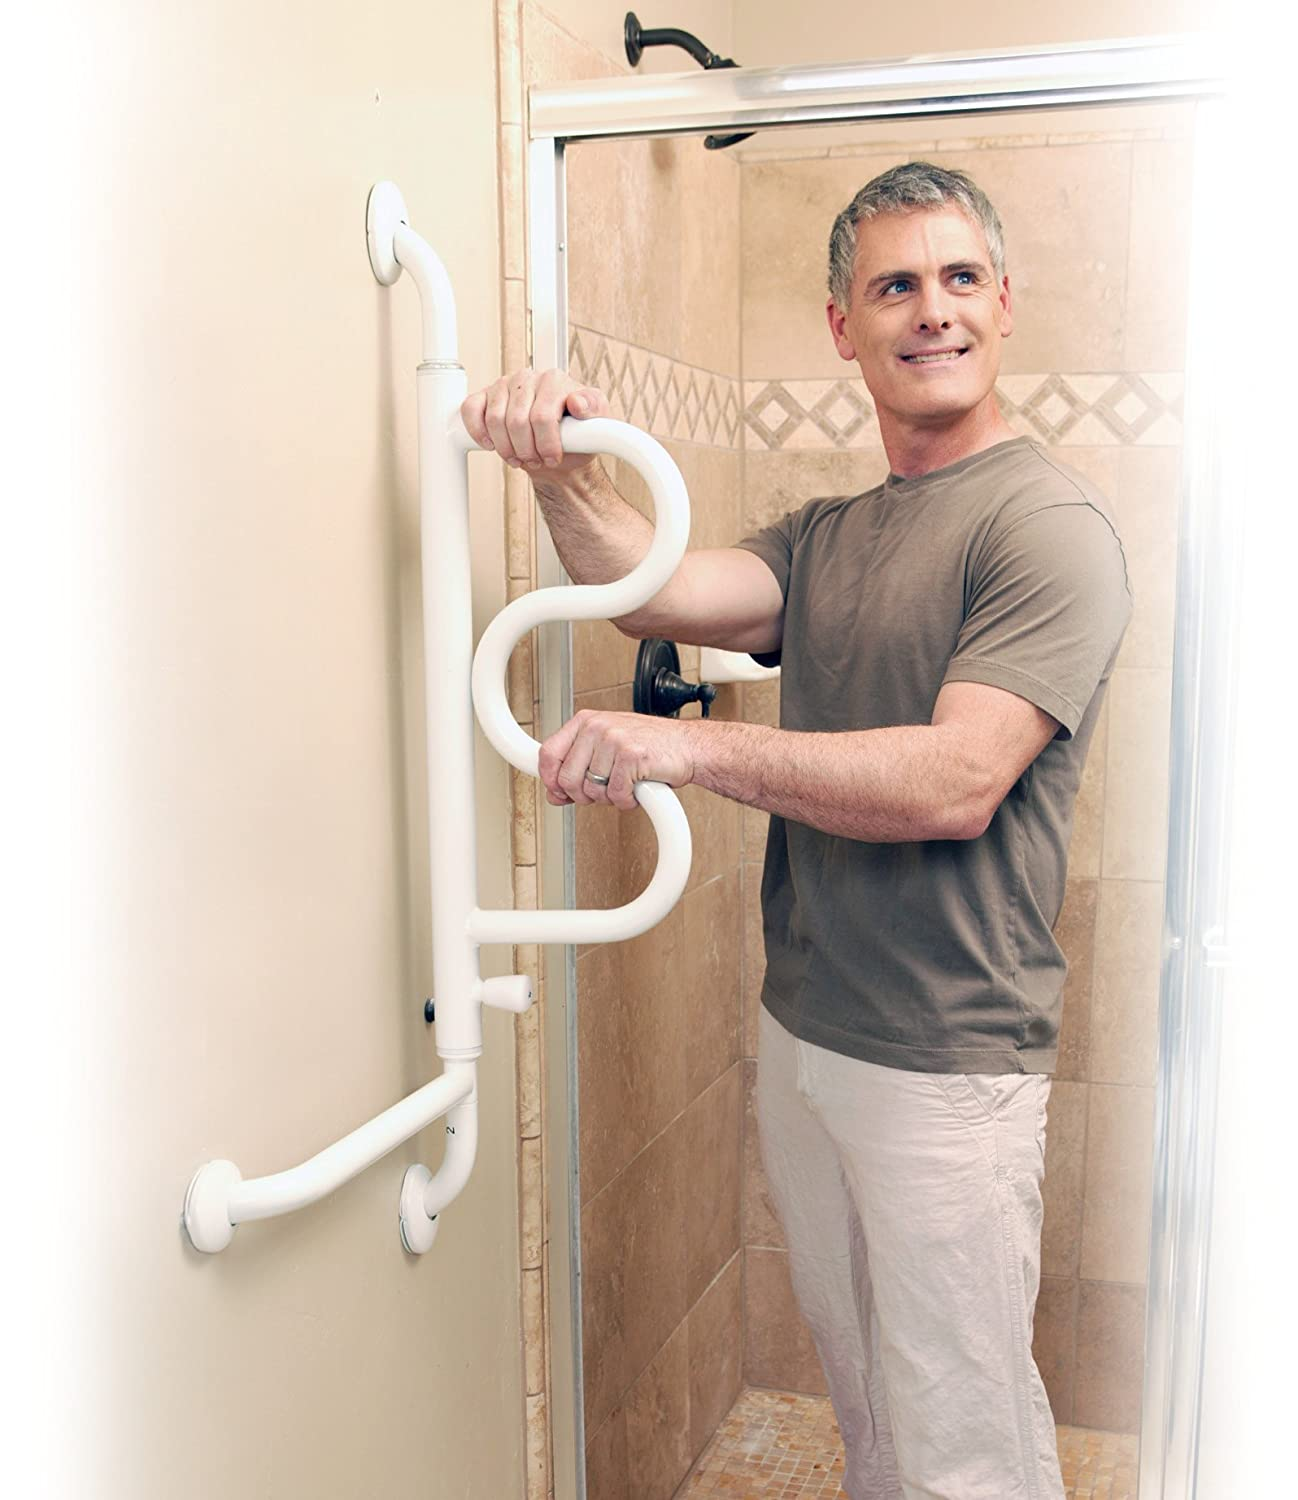 Amazon.com: Stander The Curve Grab Bar - Elderly Rotating Wall ...